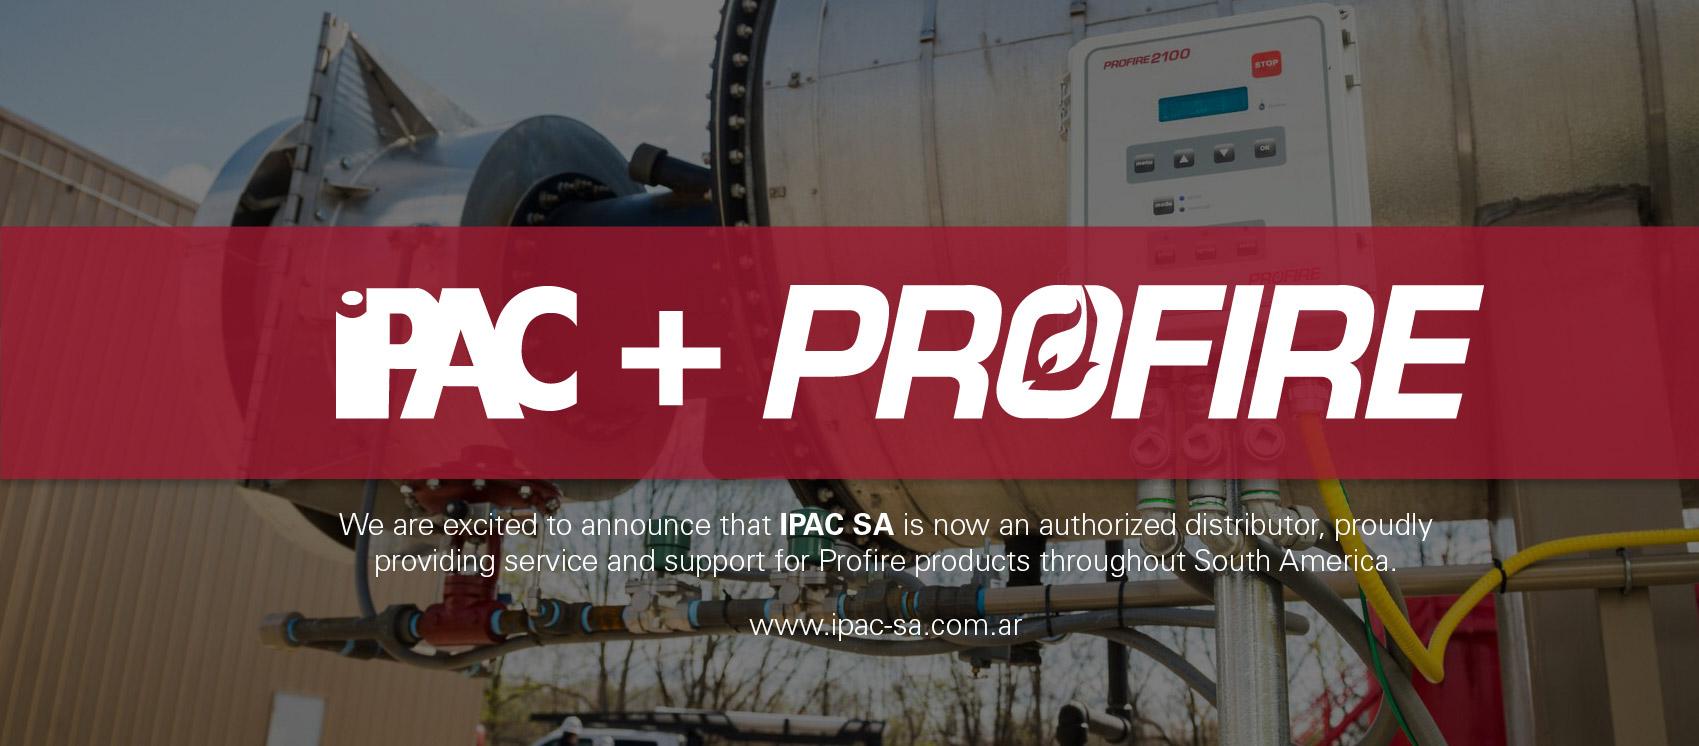 Profire Partners with IPAC